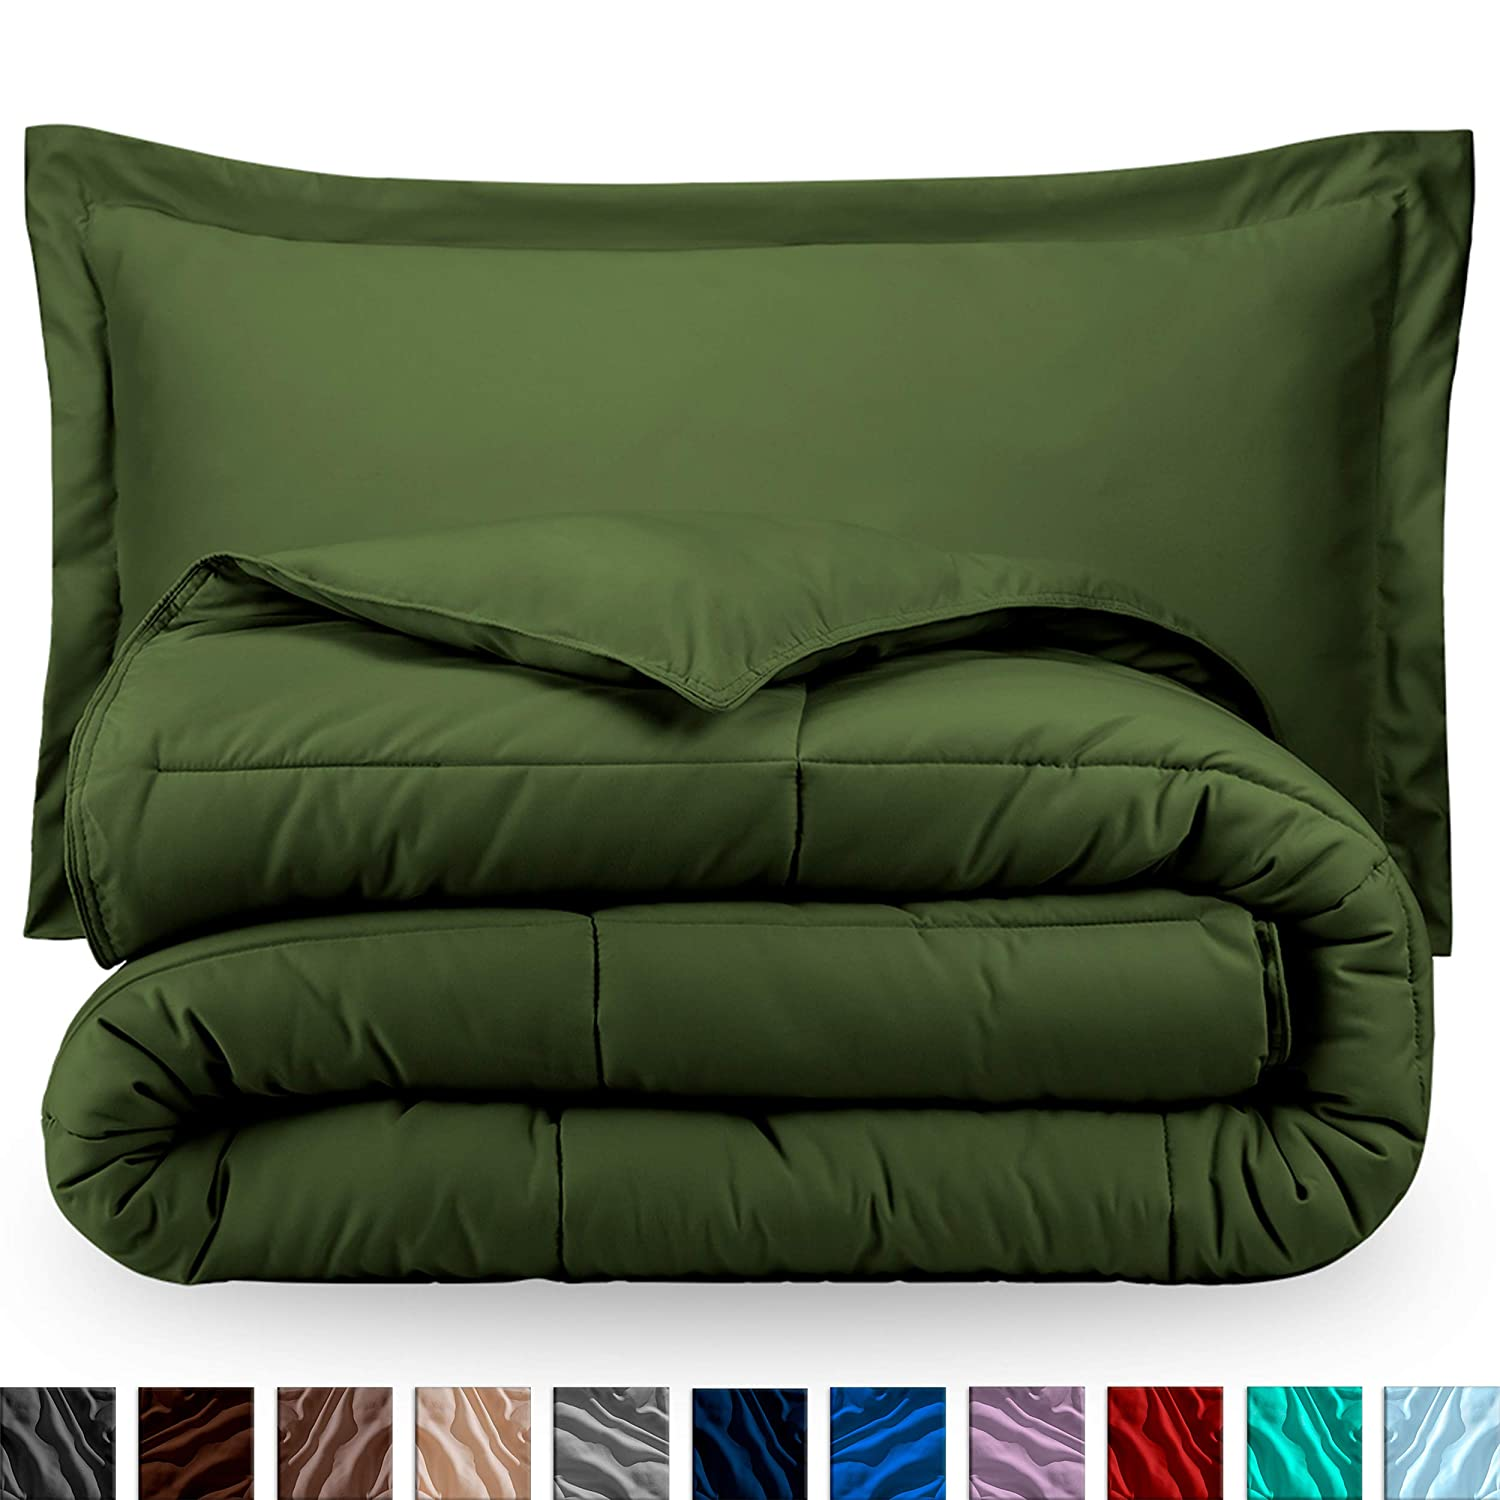 Bare Home Comforter Set - Twin/Twin Extra Long - Goose Down Alternative - Ultra-Soft - Premium 1800 Series - Hypoallergenic - All Season Breathable Warmth (Twin/Twin XL, Cypress Green)